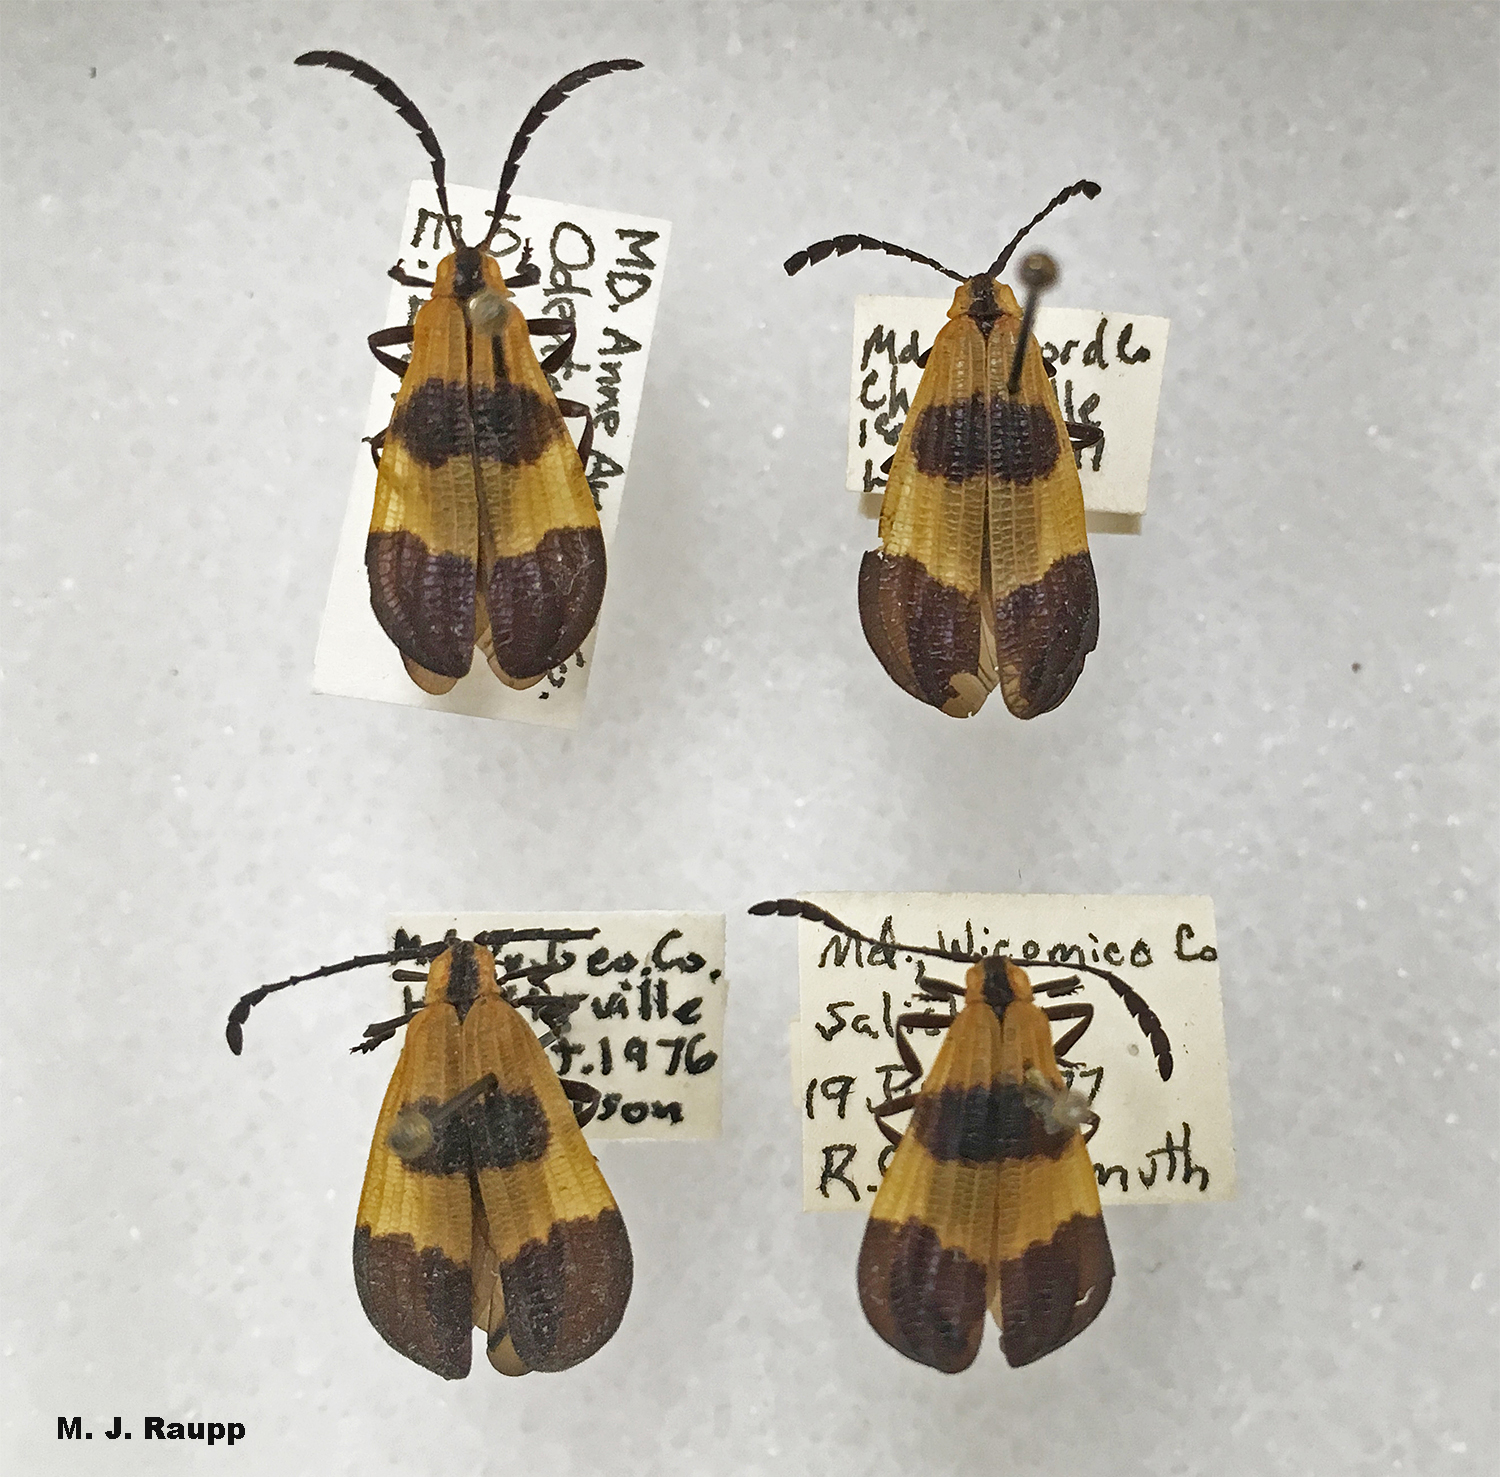 Net-winged beetles are members of a mimicry ring bearing contrasting patterns of light and dark colors.